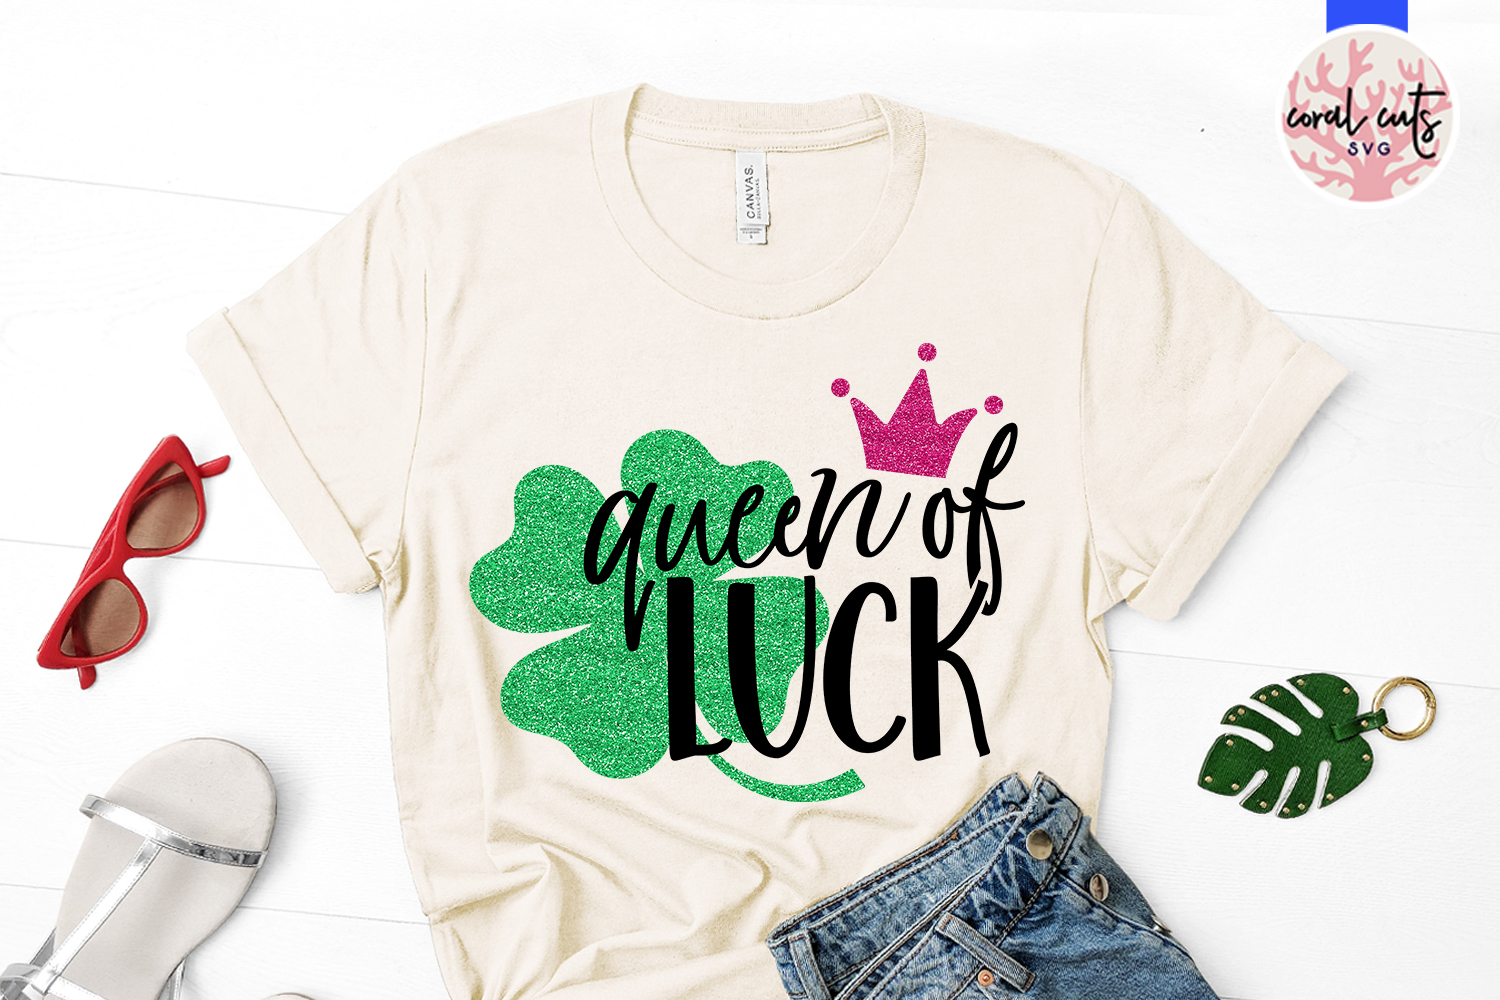 Queen of luck - St. Patrick's Day SVG EPS DXF PNG example image 2